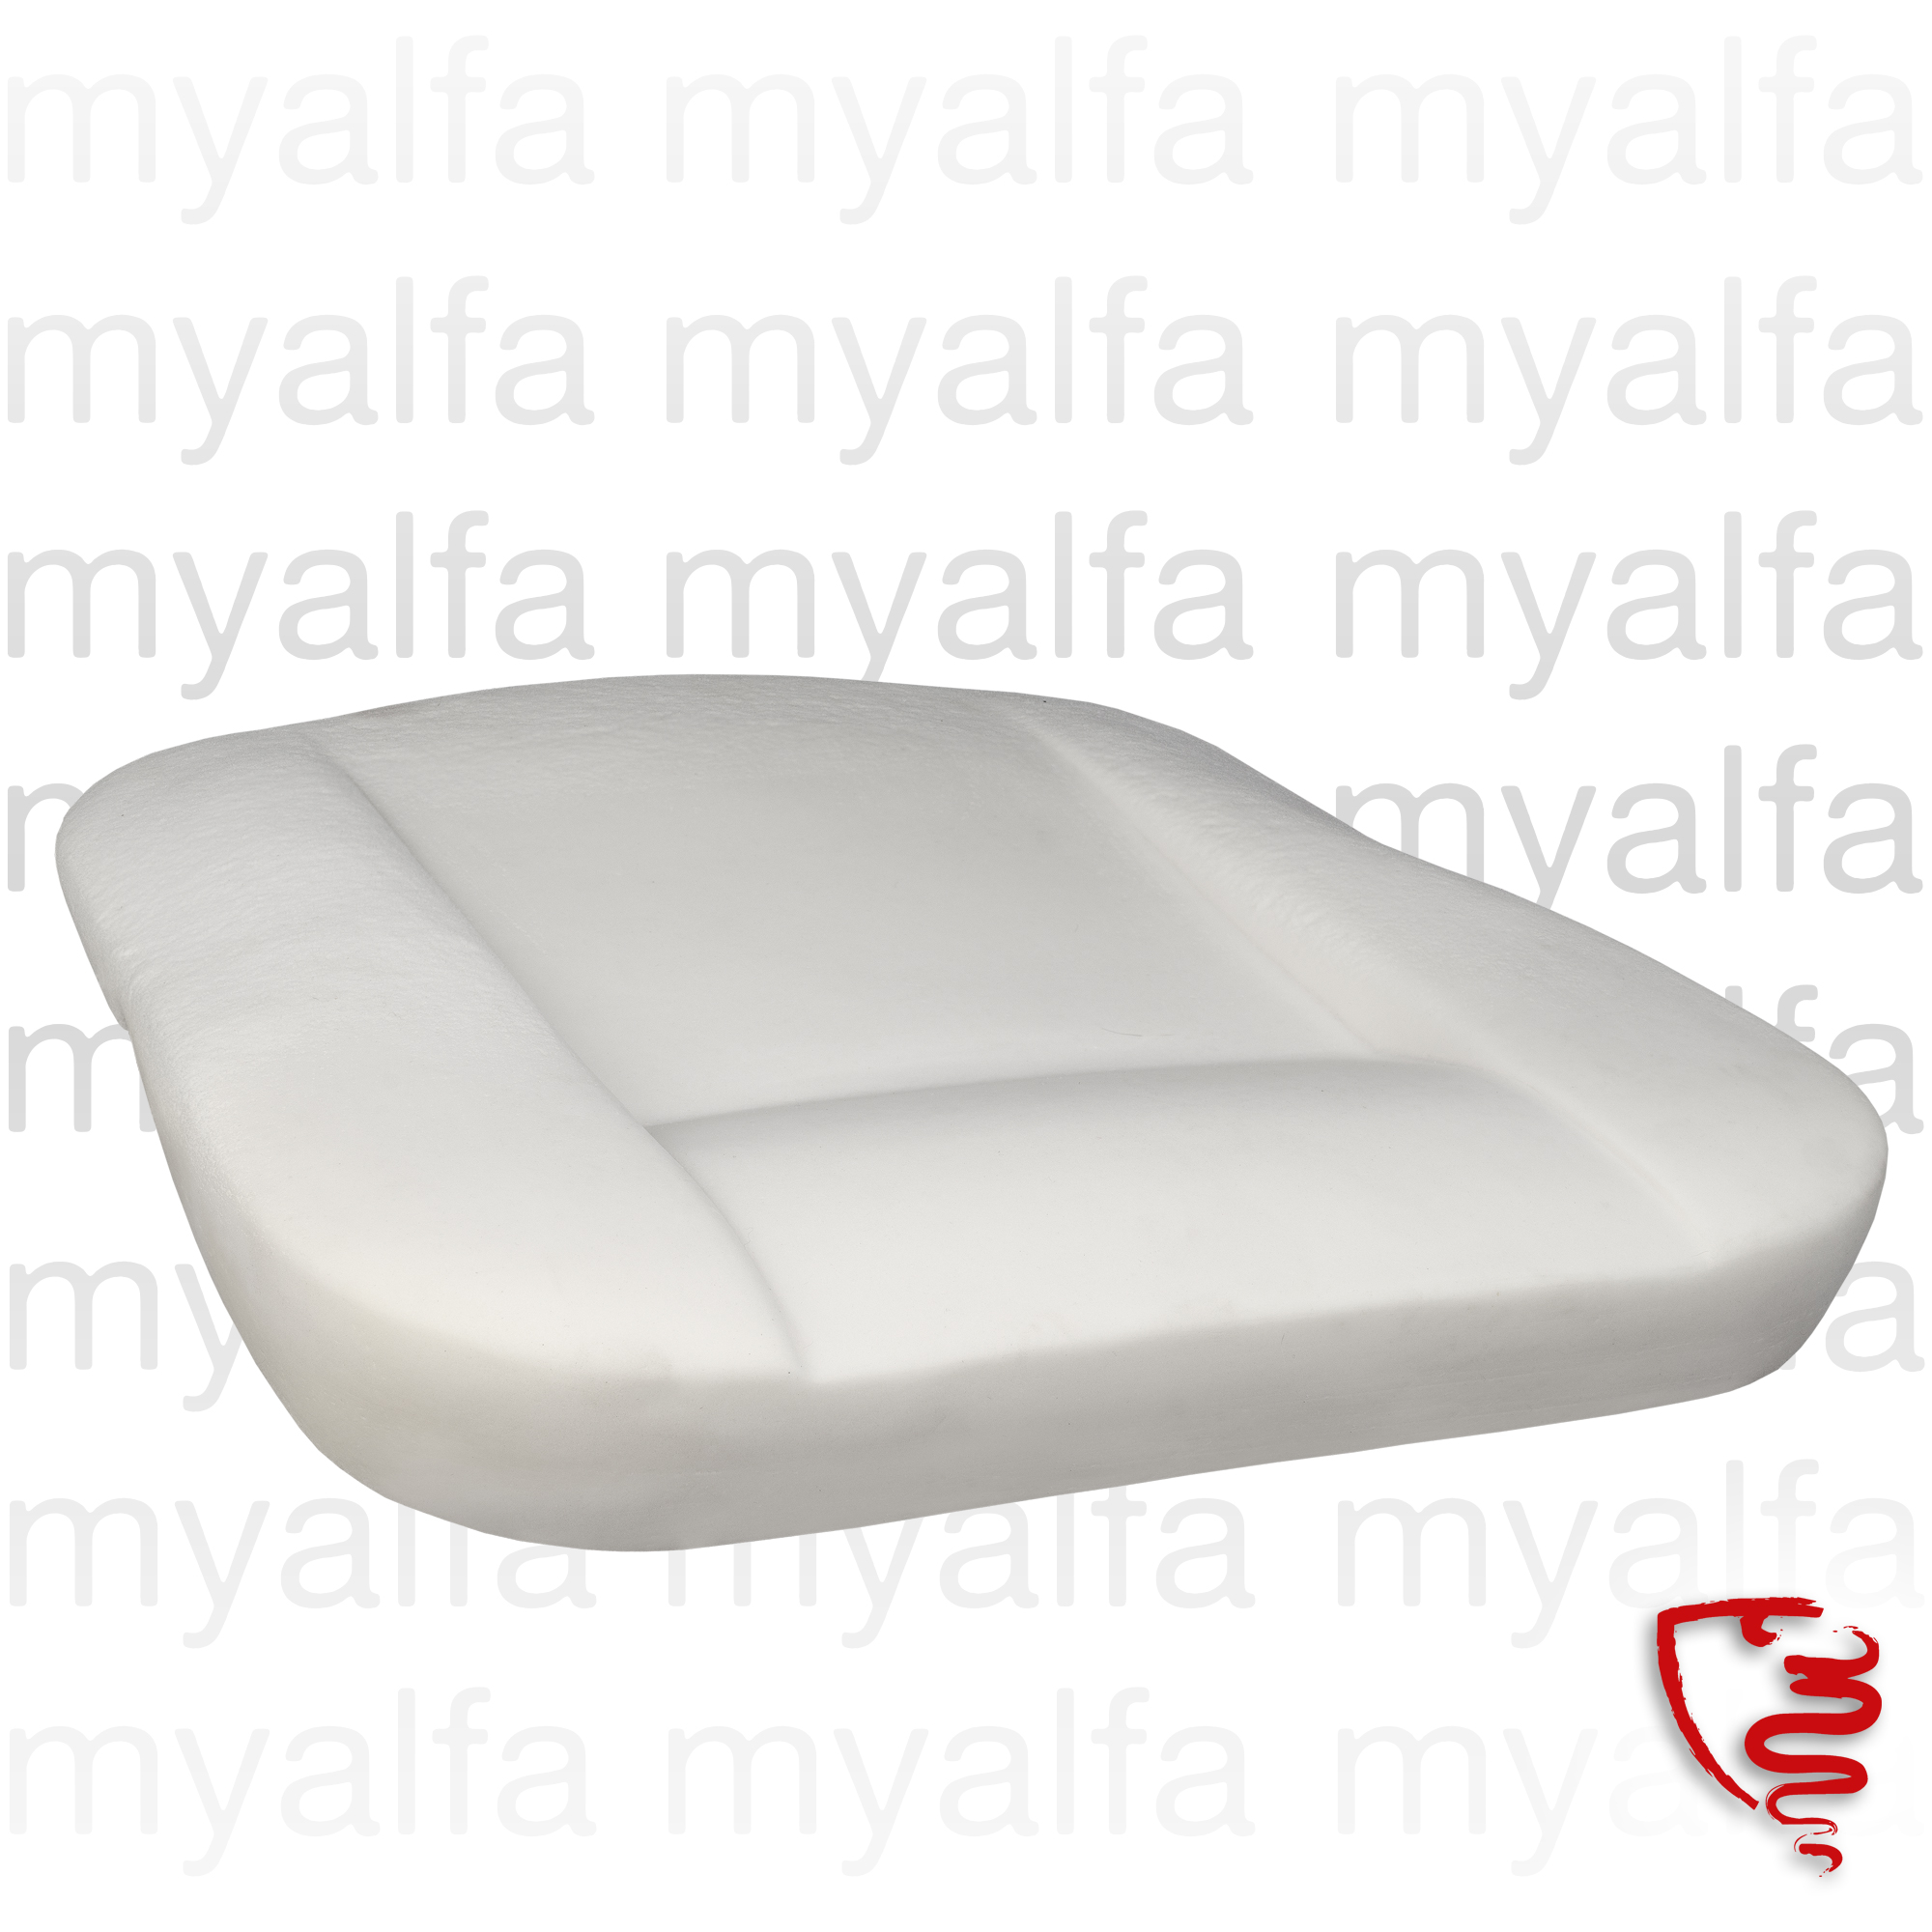 seat foam for GTV 1965-68 bank for 105/115, Coupe, Giulia Sprint GT, Interior, Seats, Seat foams